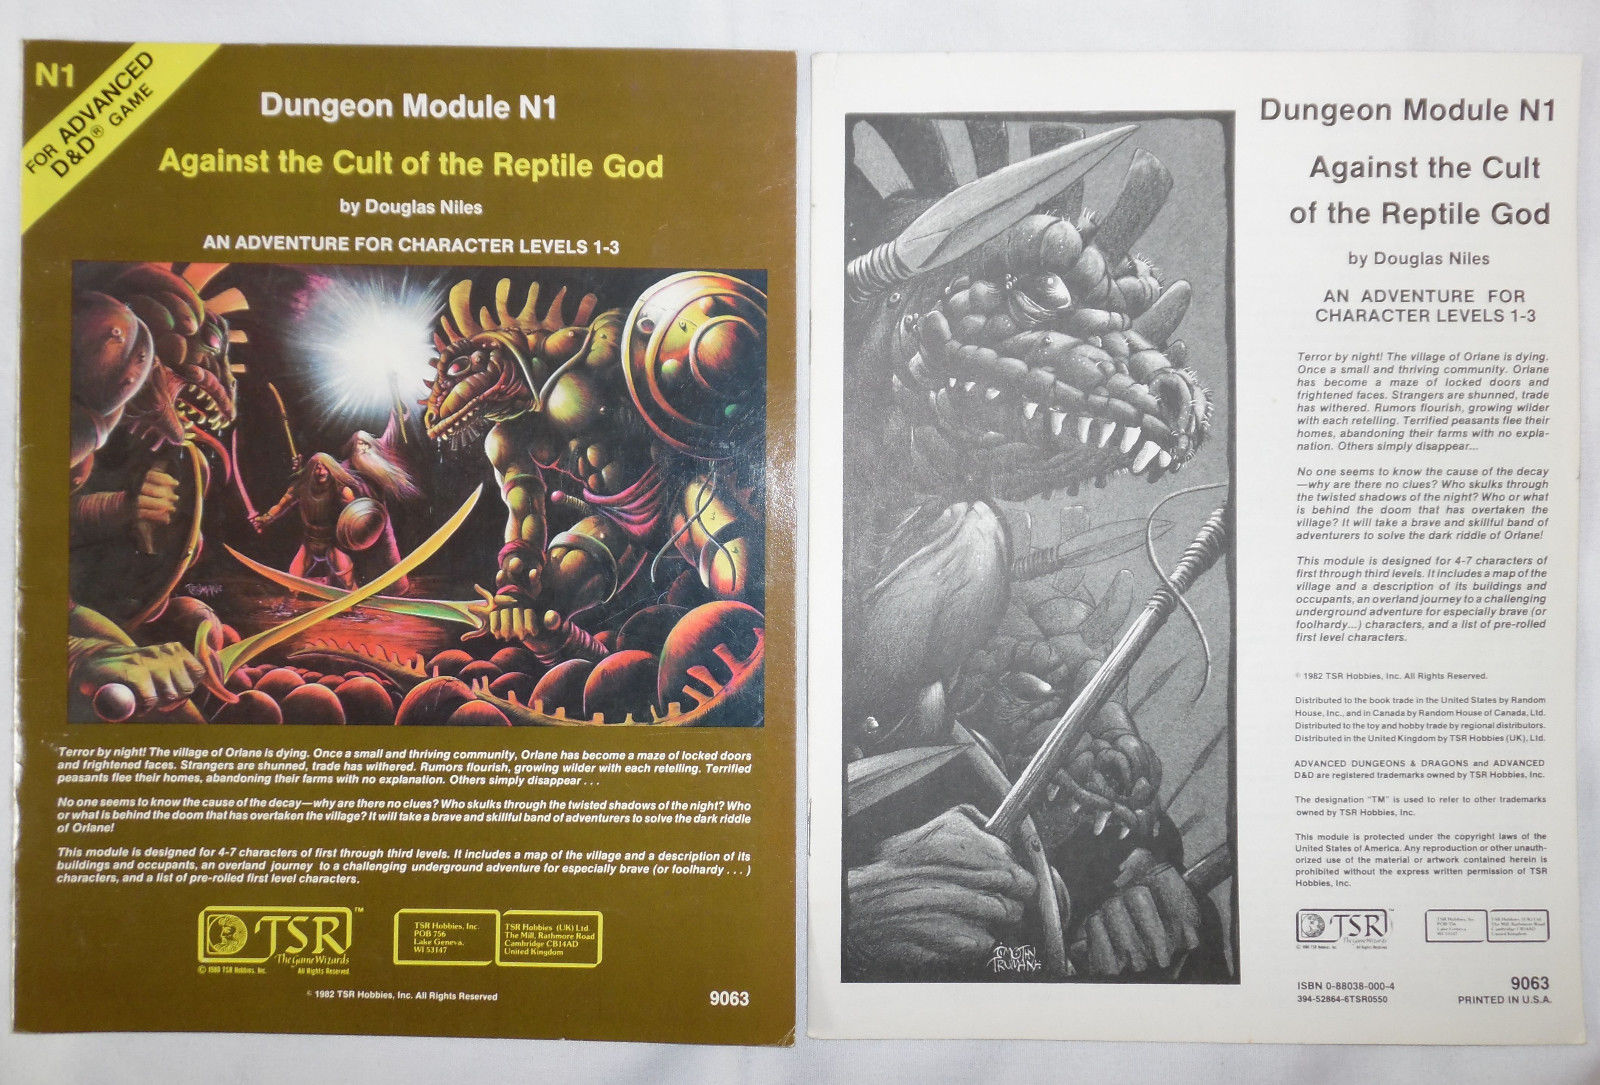 dungeons-dragons-against-the-cult-of-the-reptile-god-n1-9063-module-b2d06700ee0dc03957b9e6334b0df73a